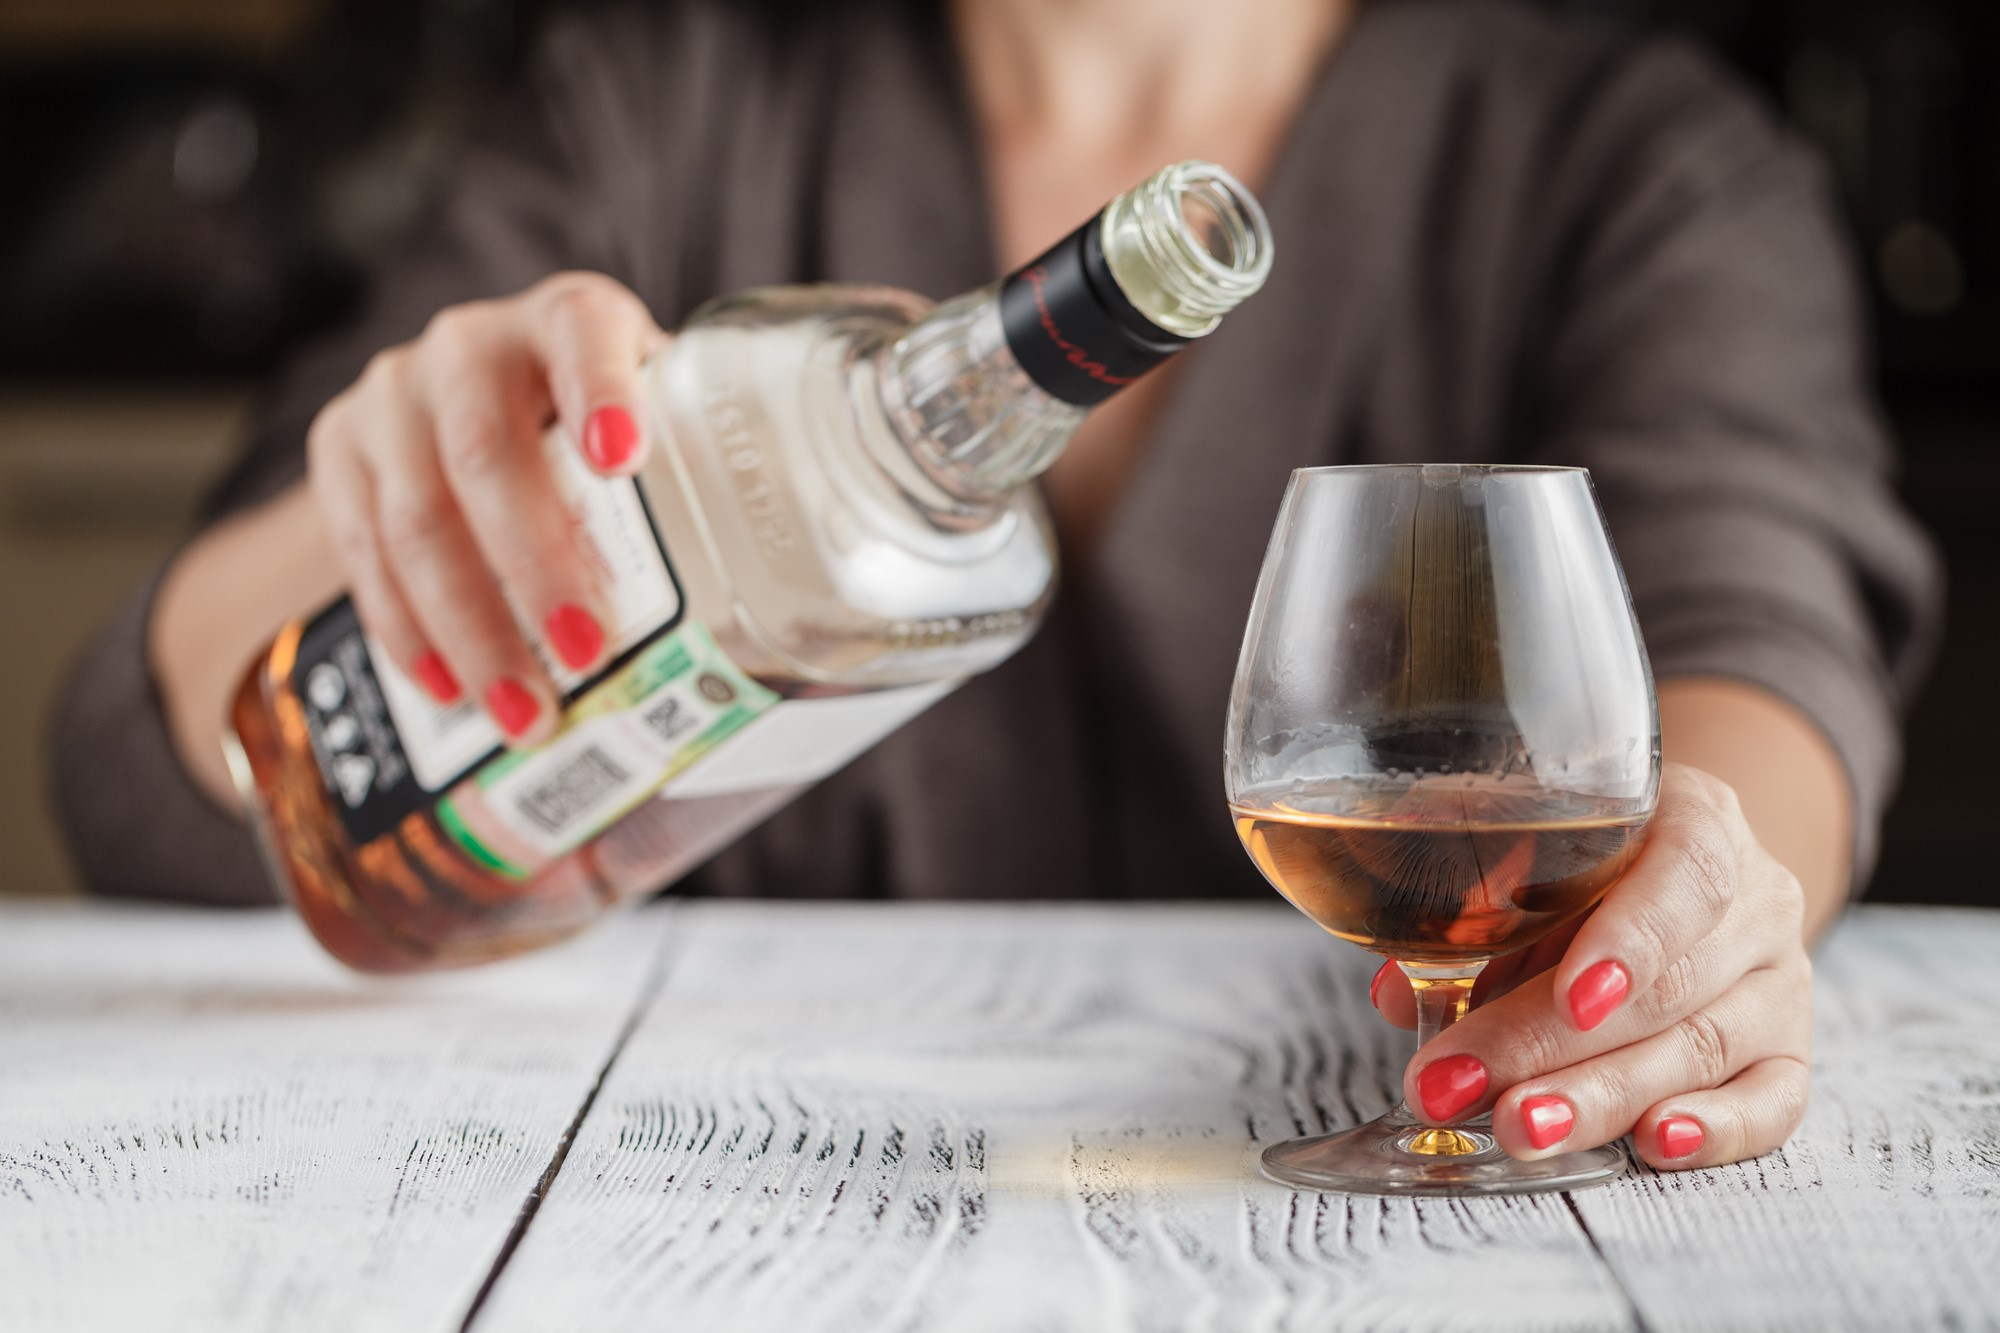 A Comprehensive Guide To Living With An Alcoholic And How You Can Help